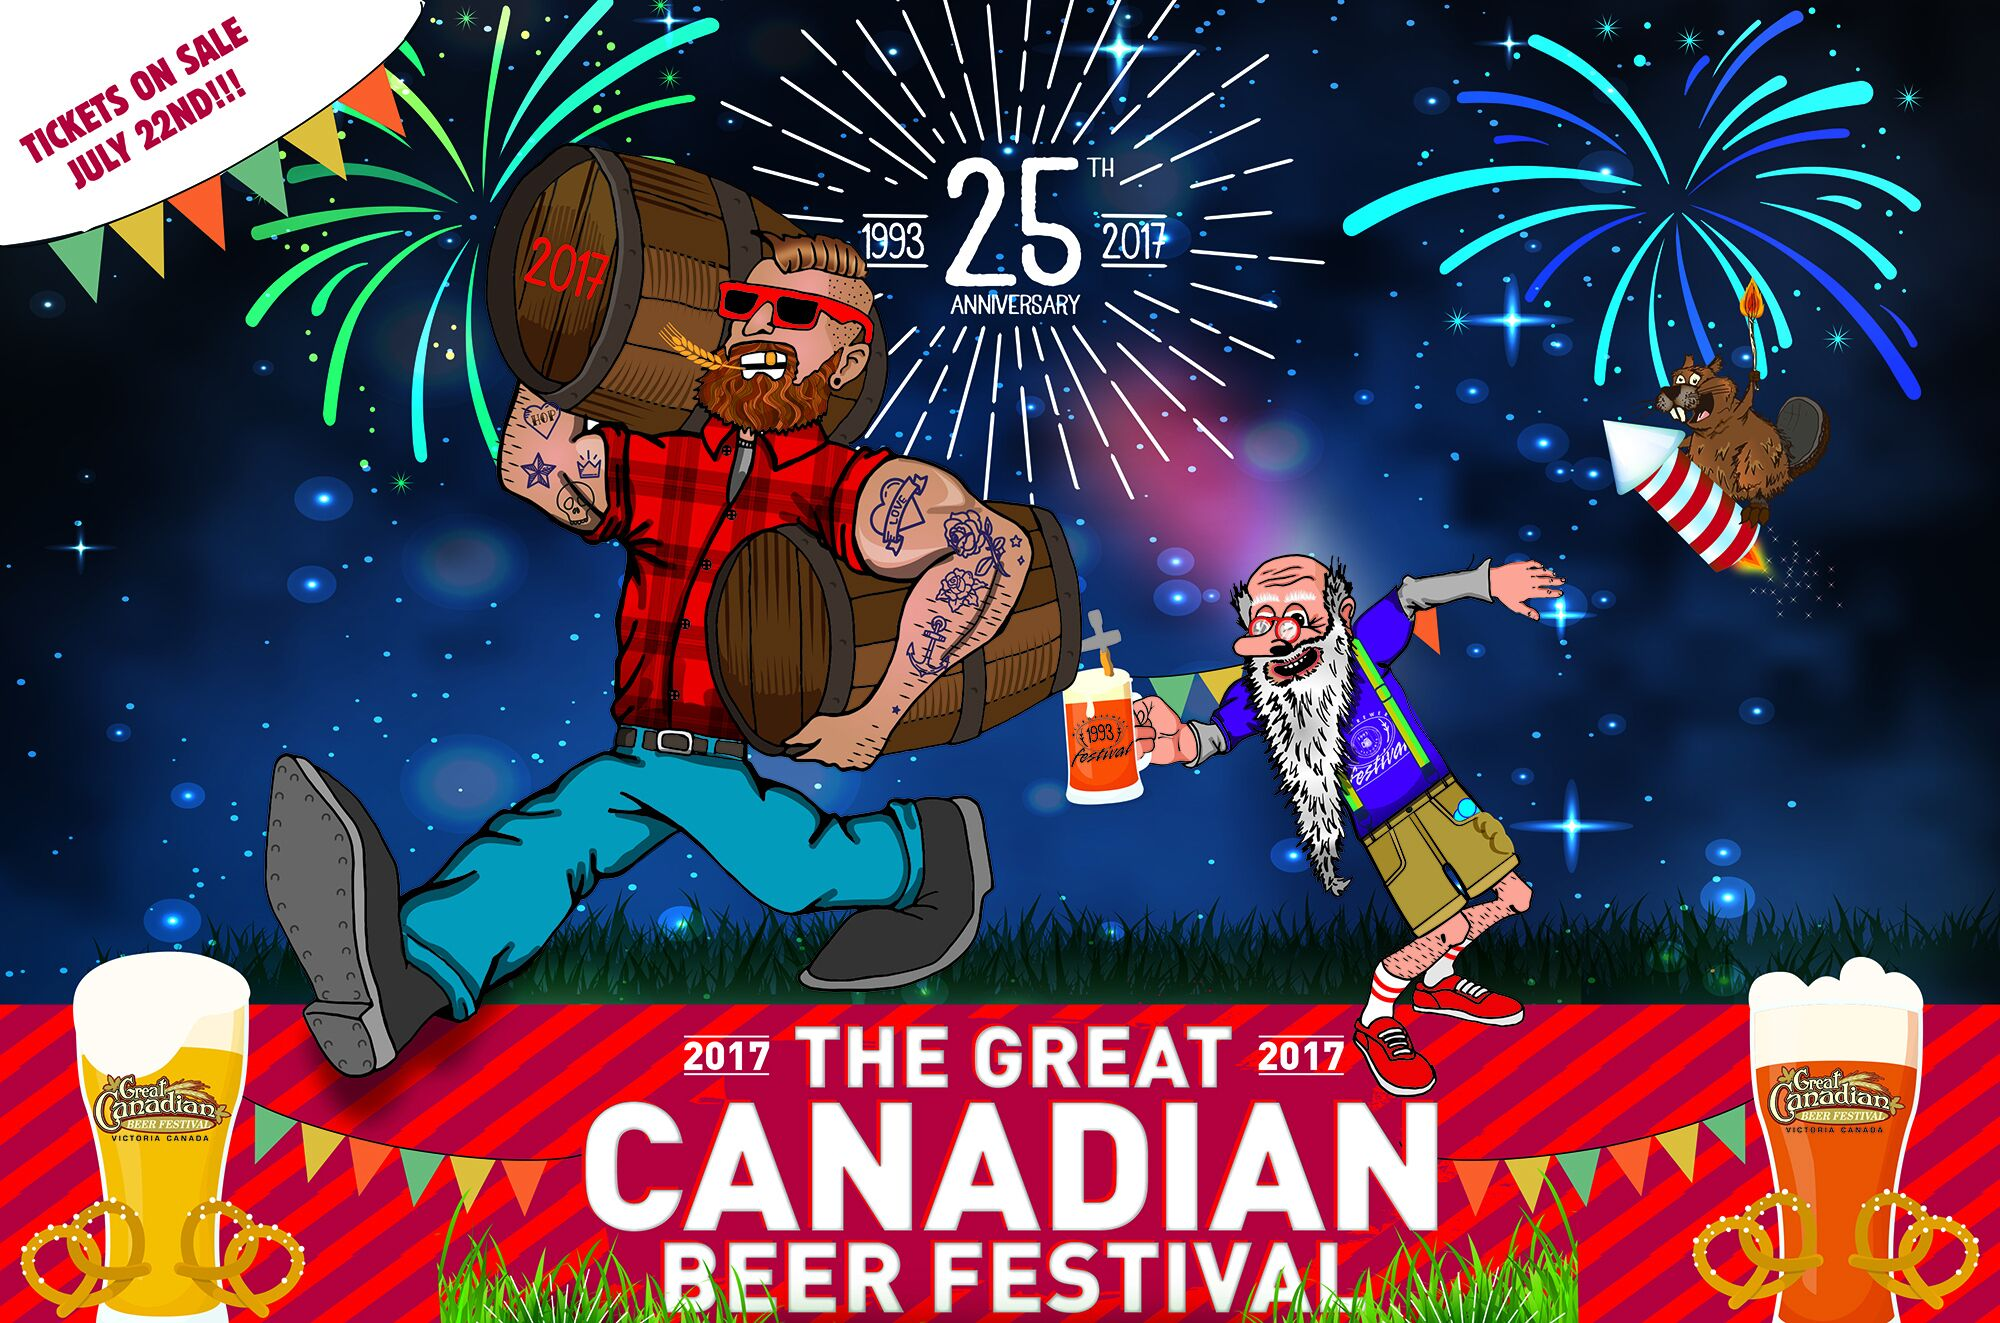 The Great Canadian Beer Festival